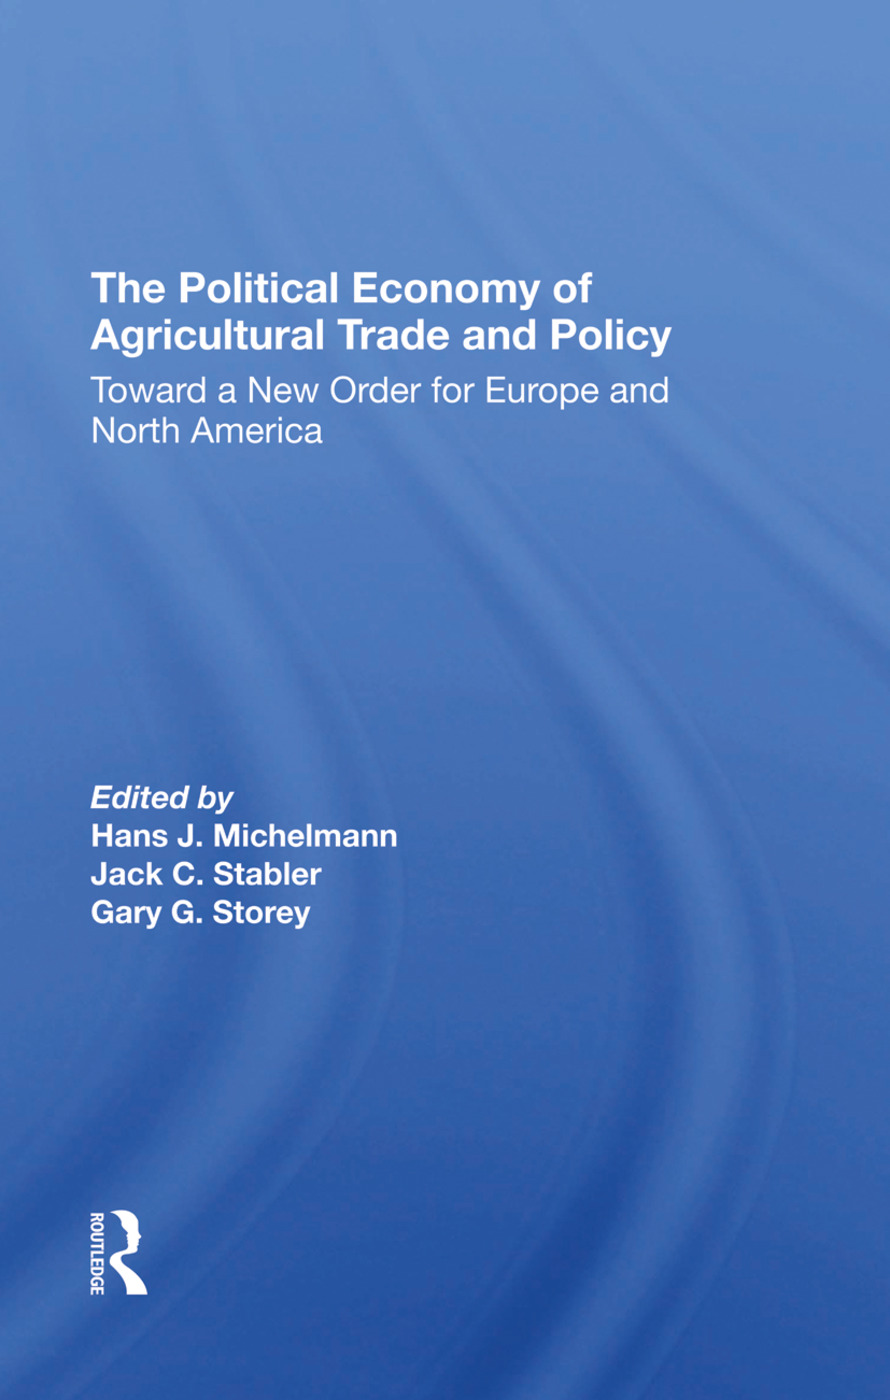 The Political Economy of Agricultural Trade and Policy